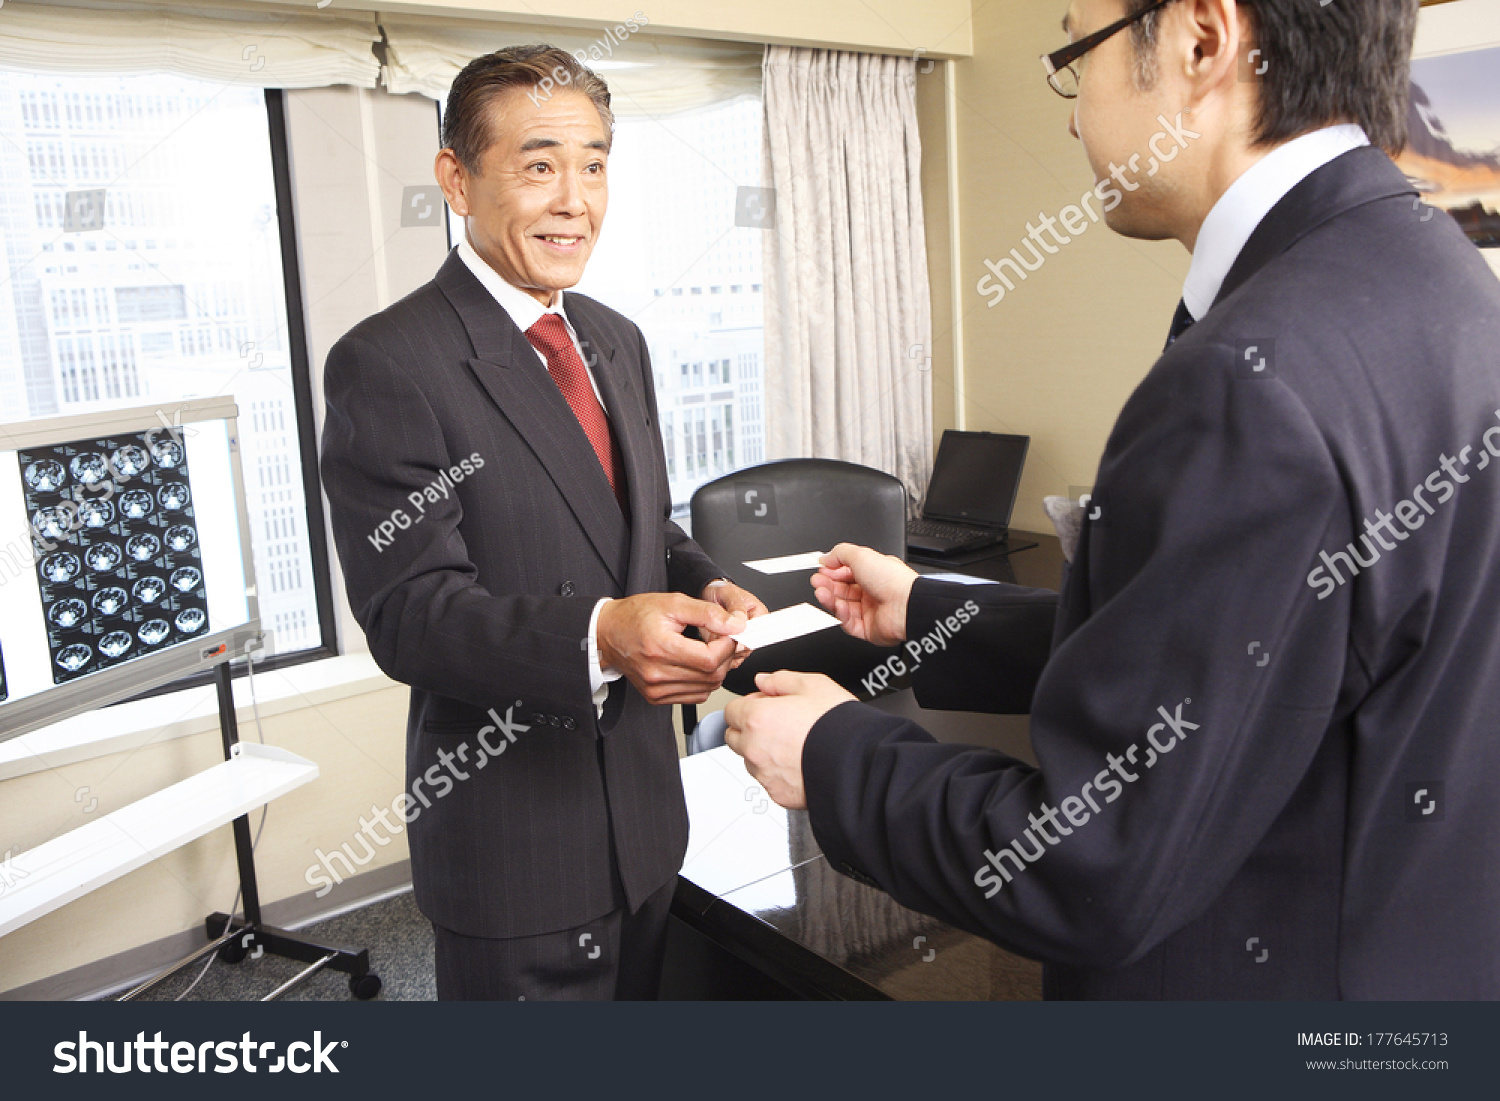 Japanese Businessman Exchange Business Cards Stock Photo 177645713 ...